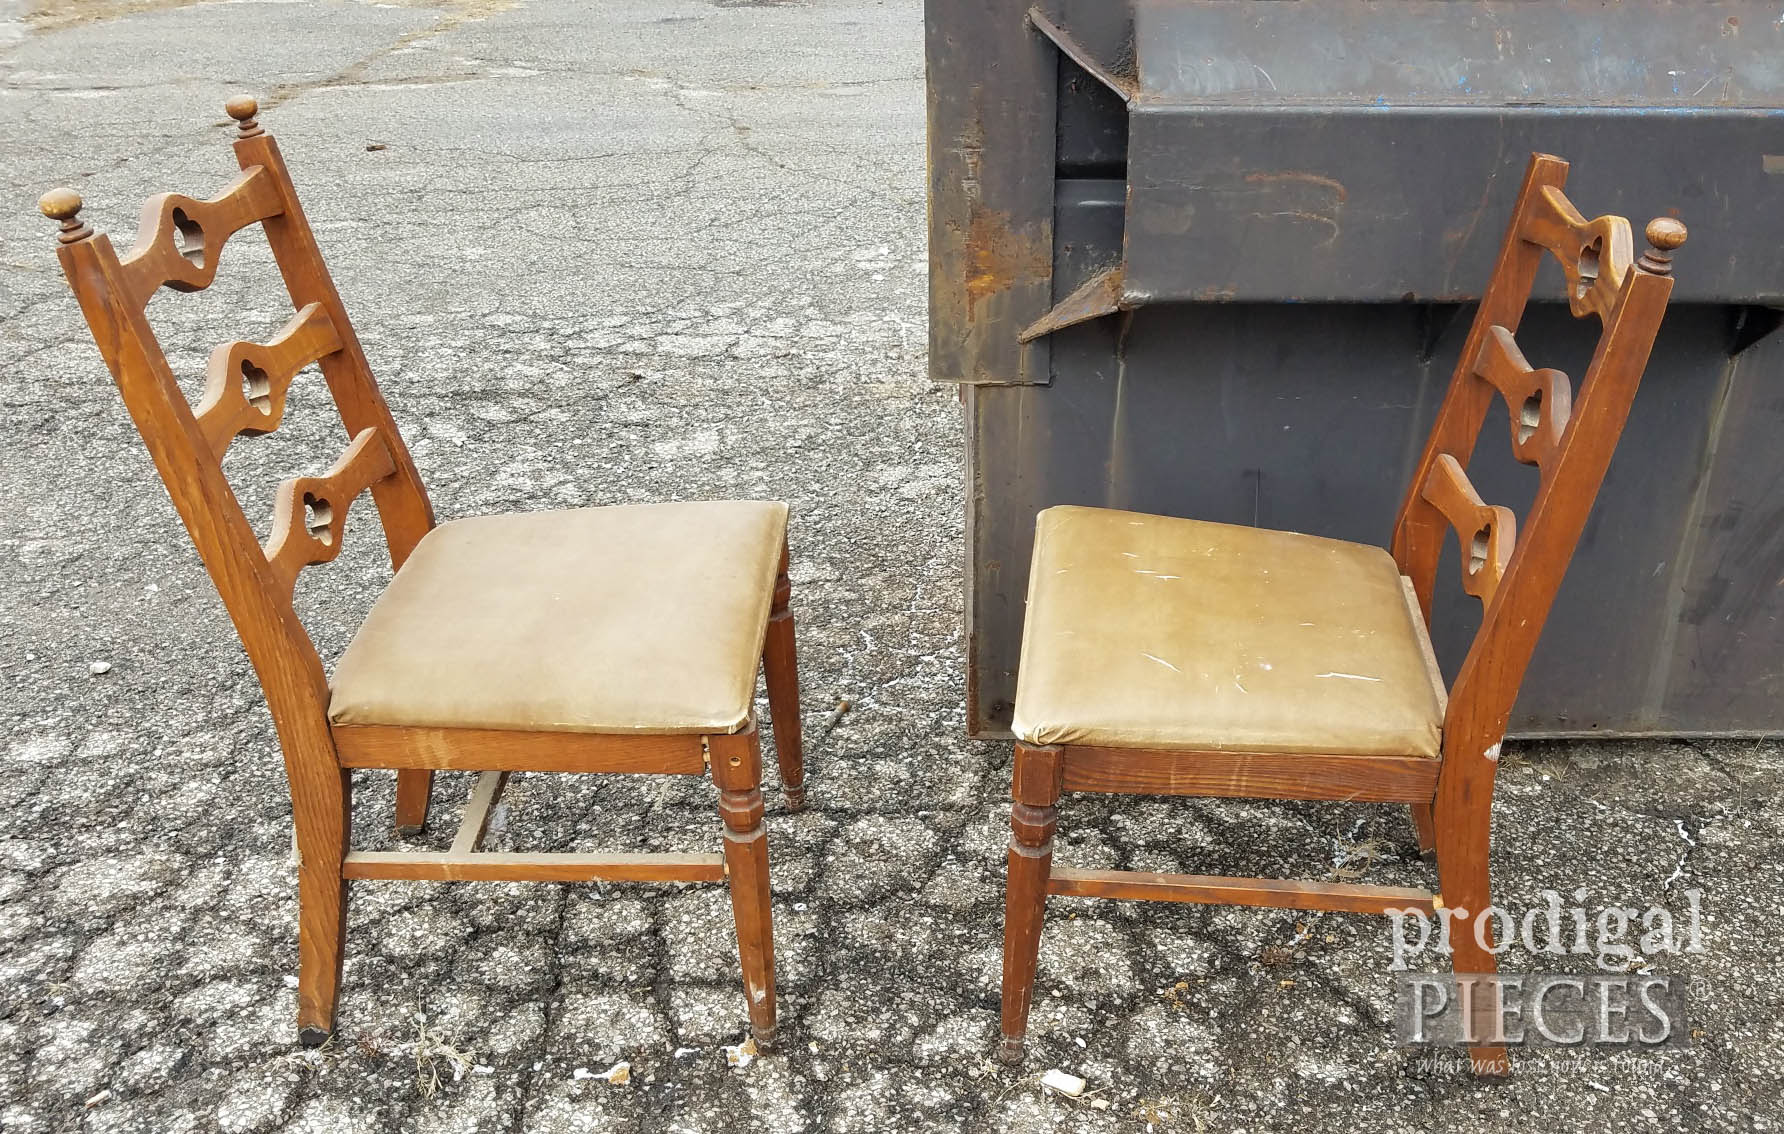 Vintage Chairs Set at Dumpster | Prodigal Pieces | prodigalpieces.com #prodigalpieces